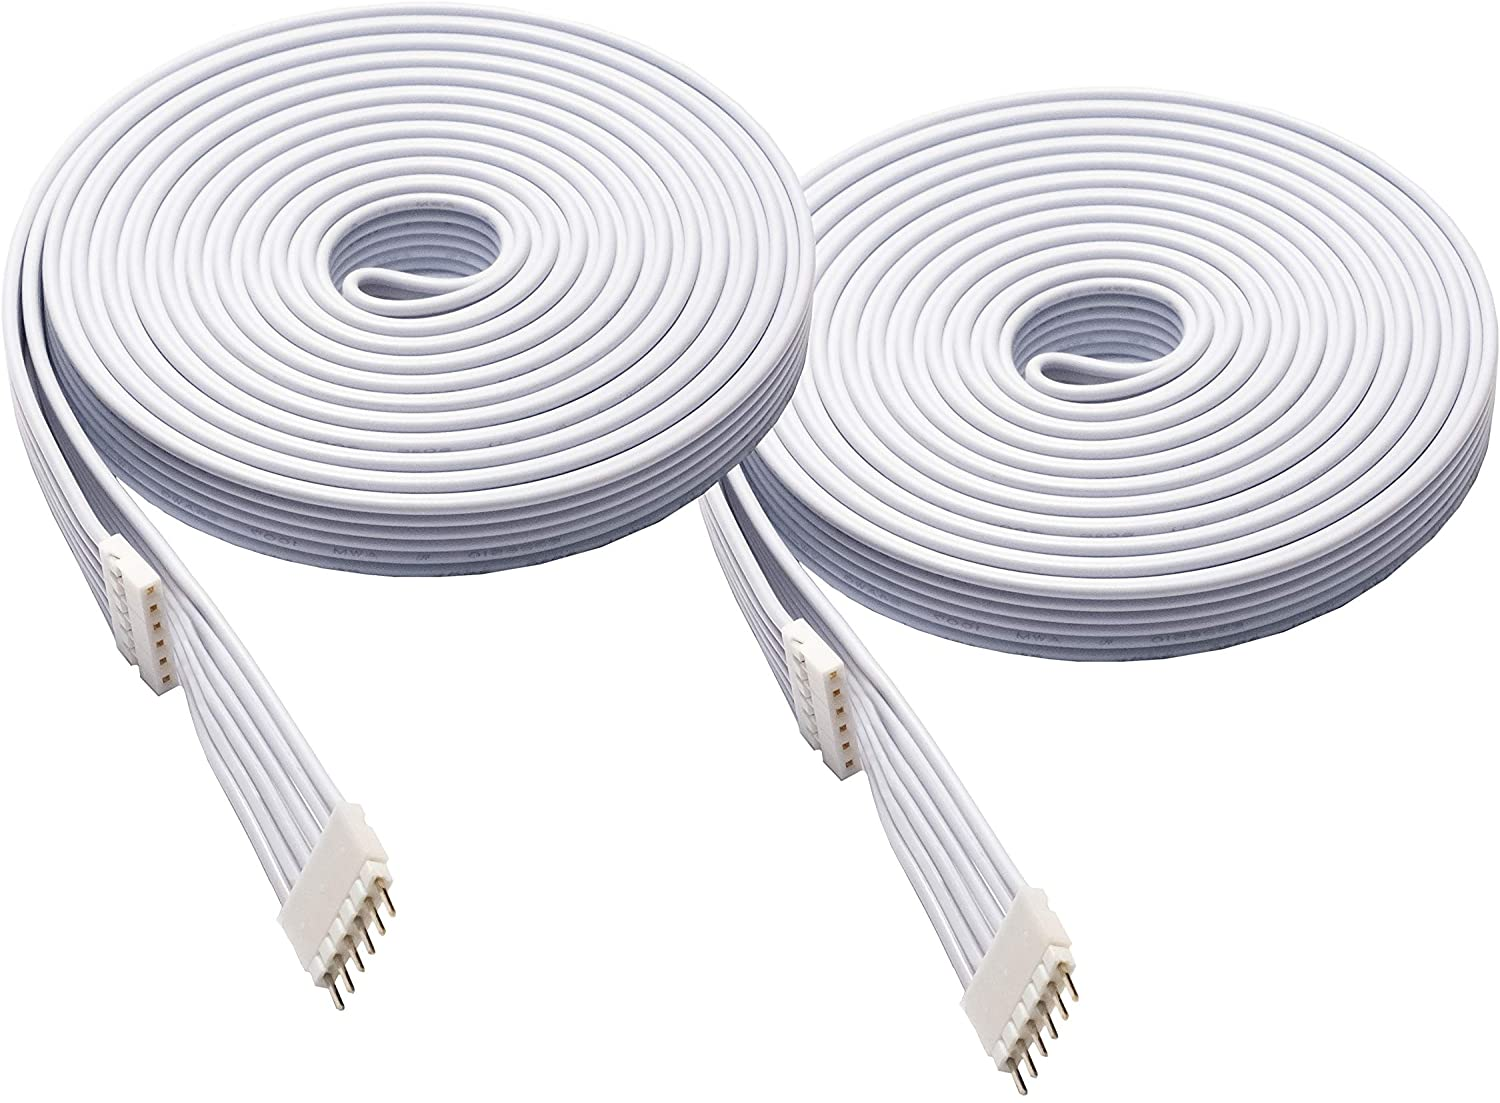 Litcessory Extension Cable for Eve Light Strips (10ft, 2 Pack, White)